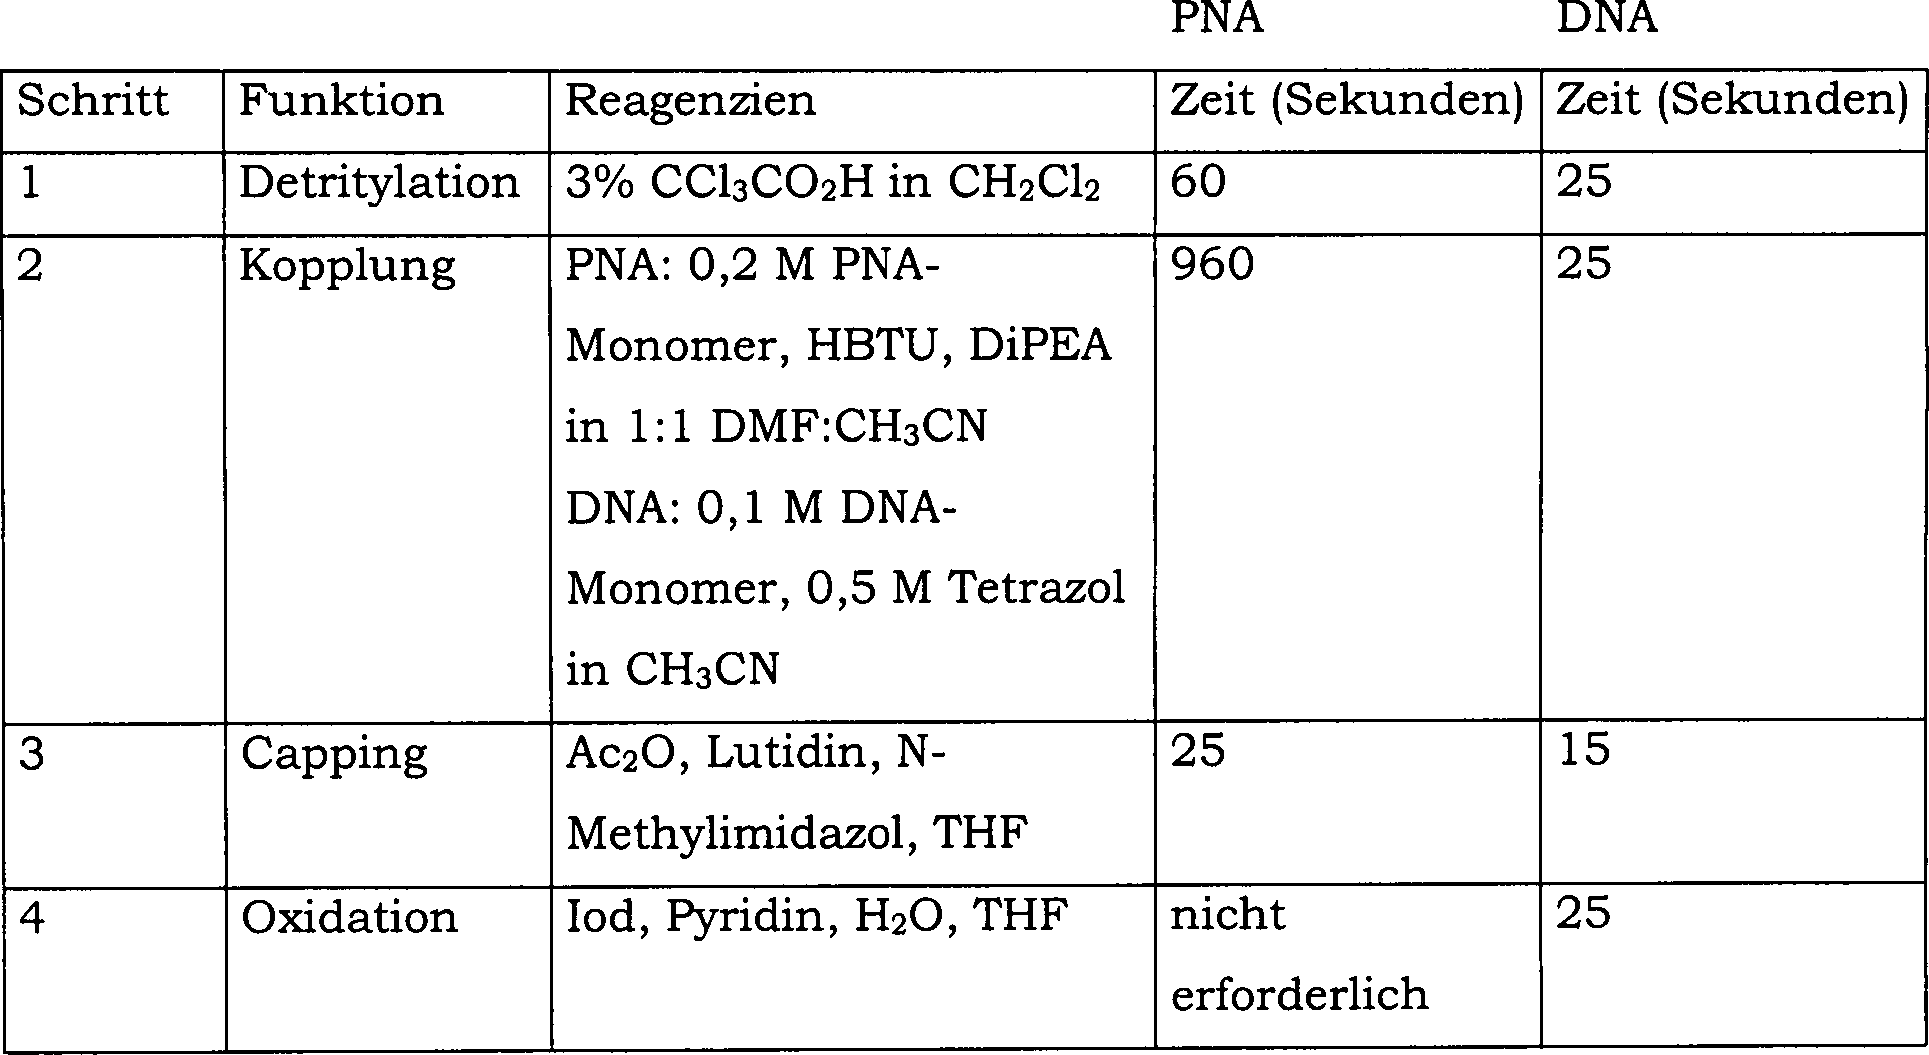 DE60020124T2 - Extension of a PNA-DNA chimera to its 3 \'end by means ...